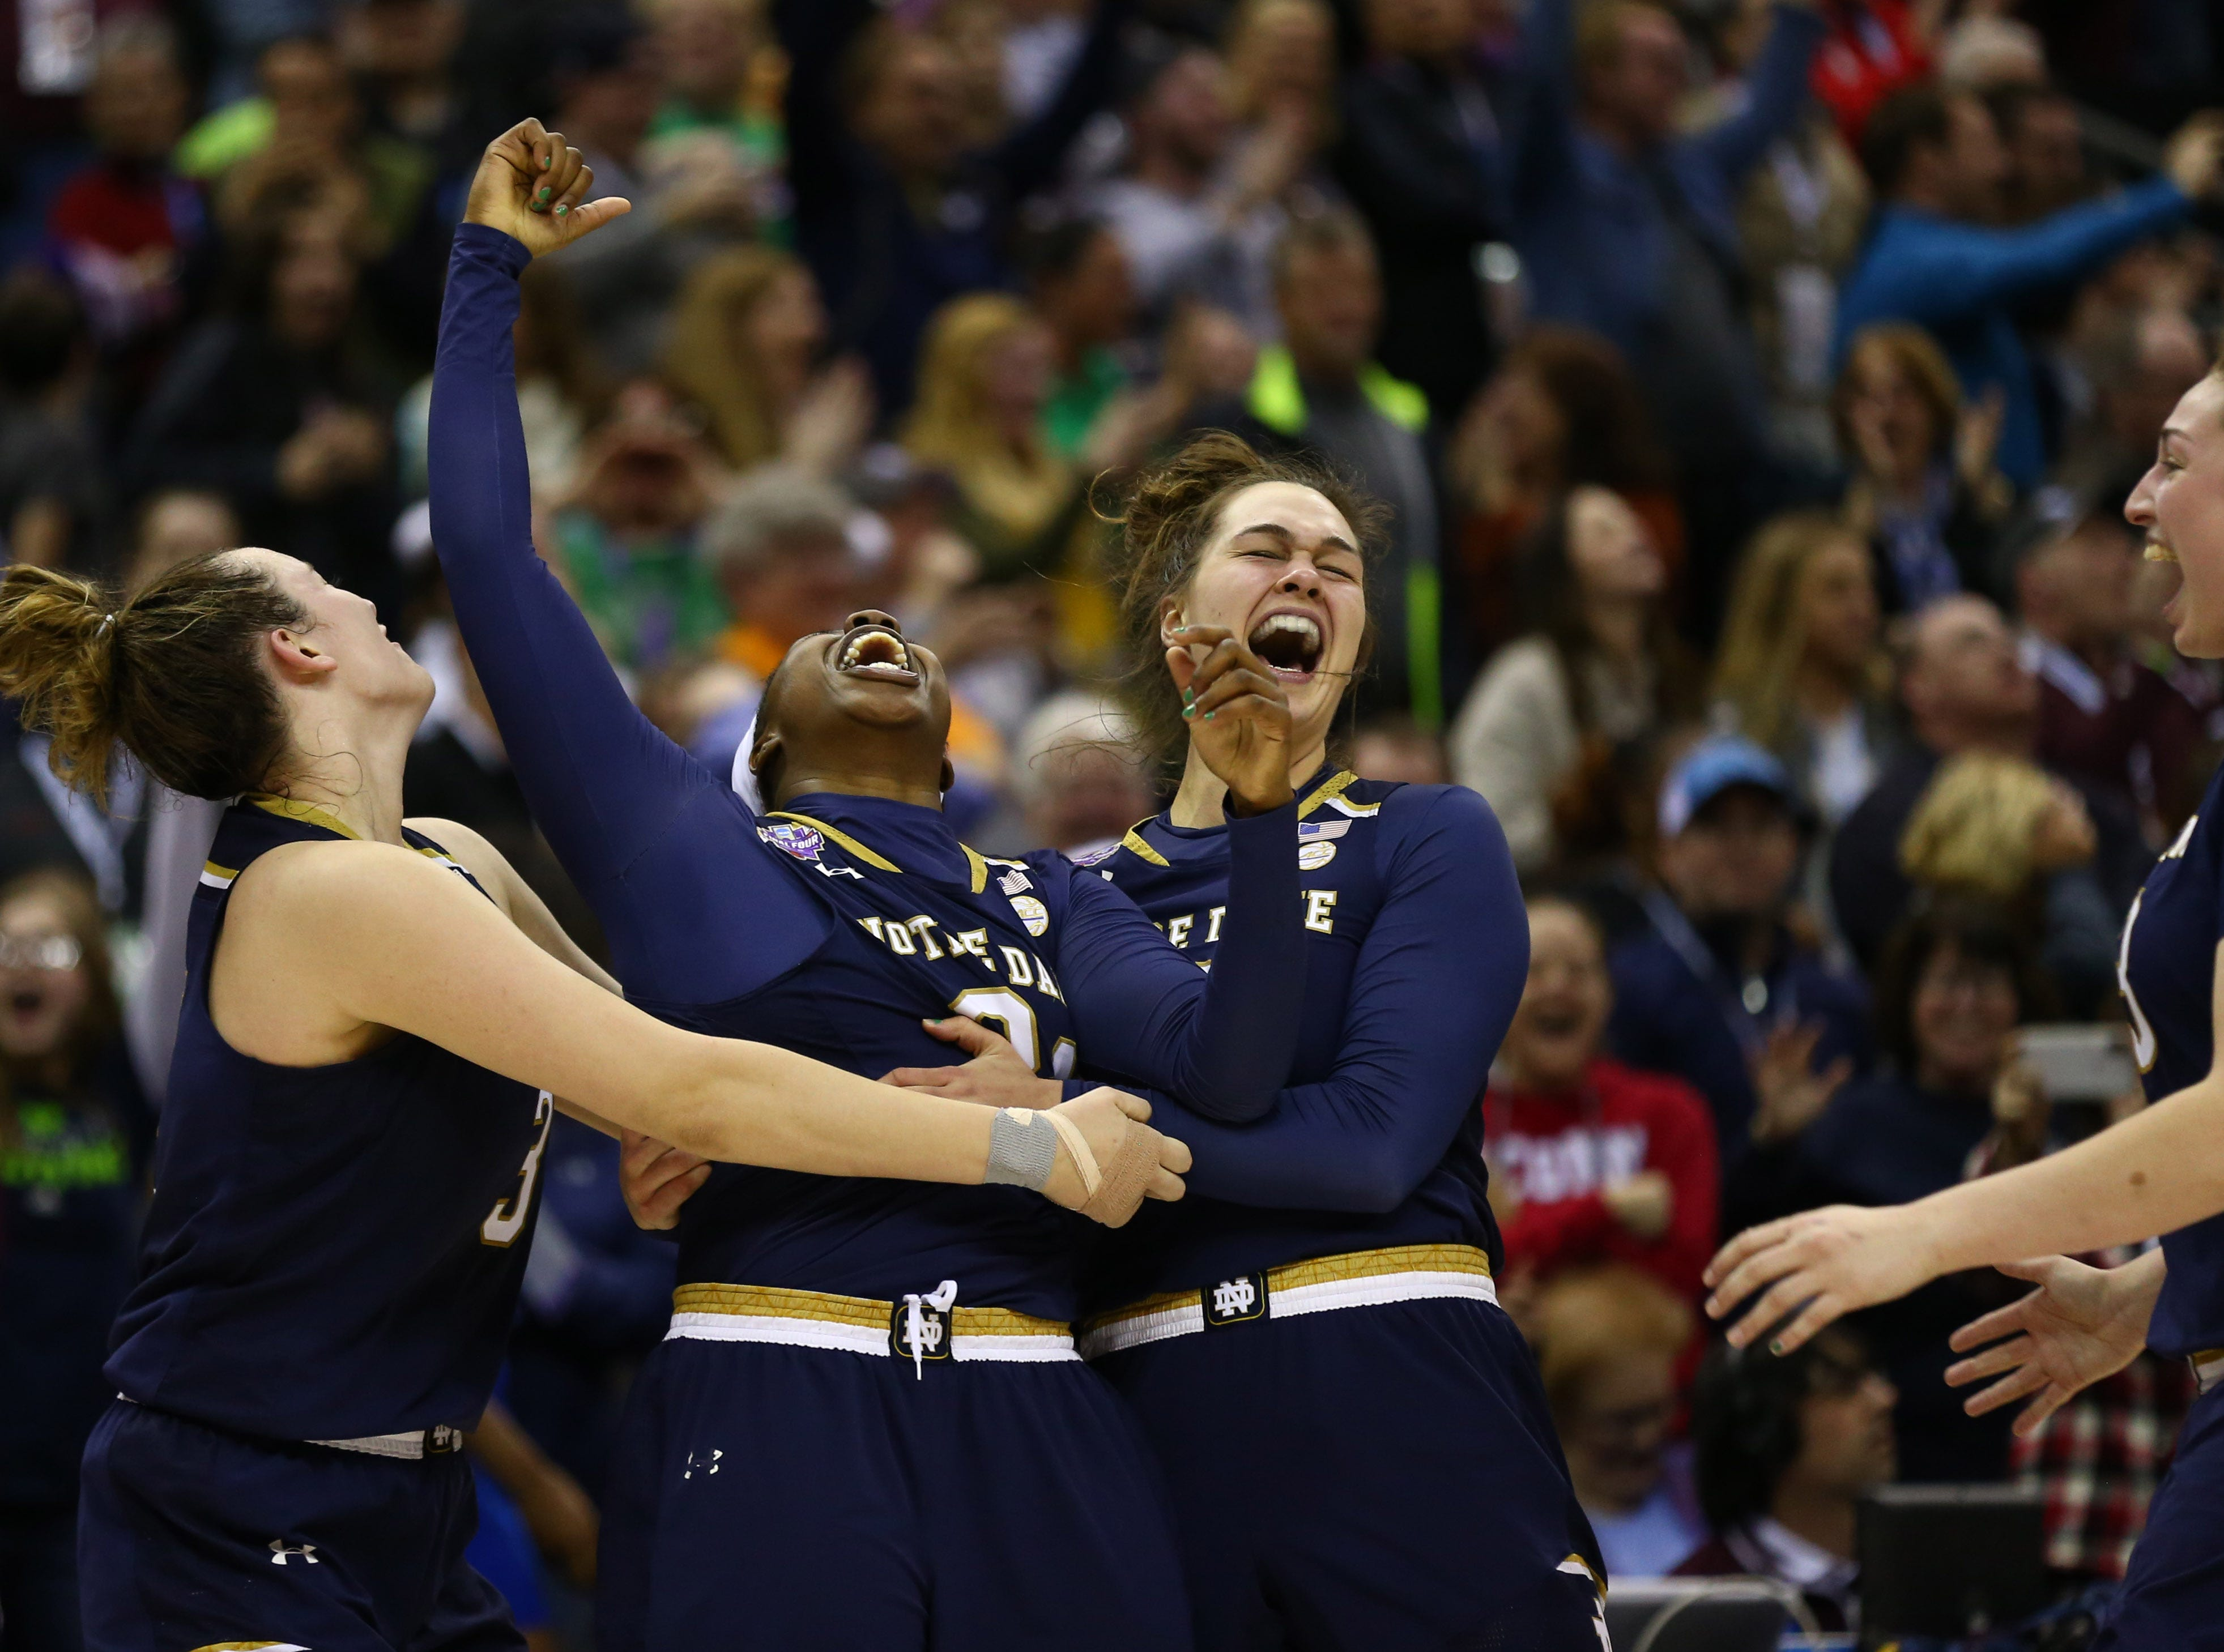 April 1: Notre Dame guard Arike Ogunbowale (middle) celebrates with teammates after making the game-winning basket against Mississippi State in the national title game.